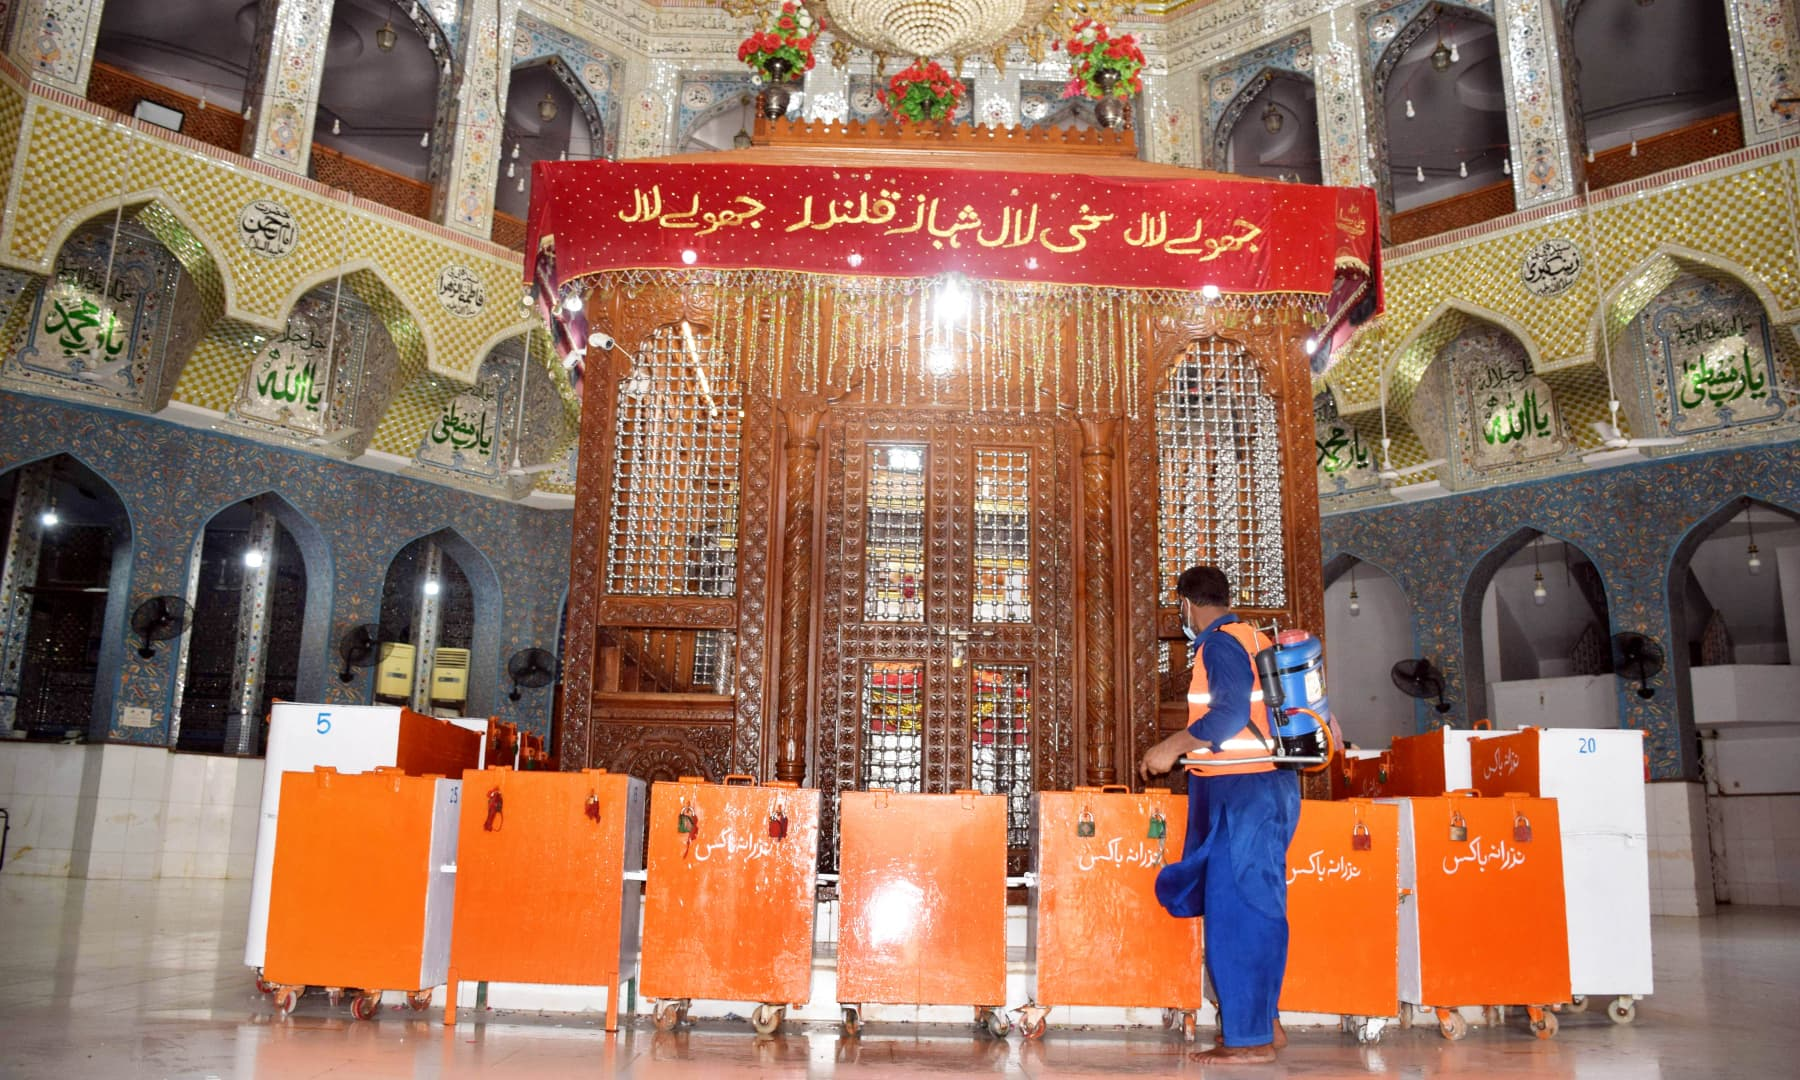 A town committee worker sanitises the inner sanctum of the shrine on Monday after it was reopened for visitors.